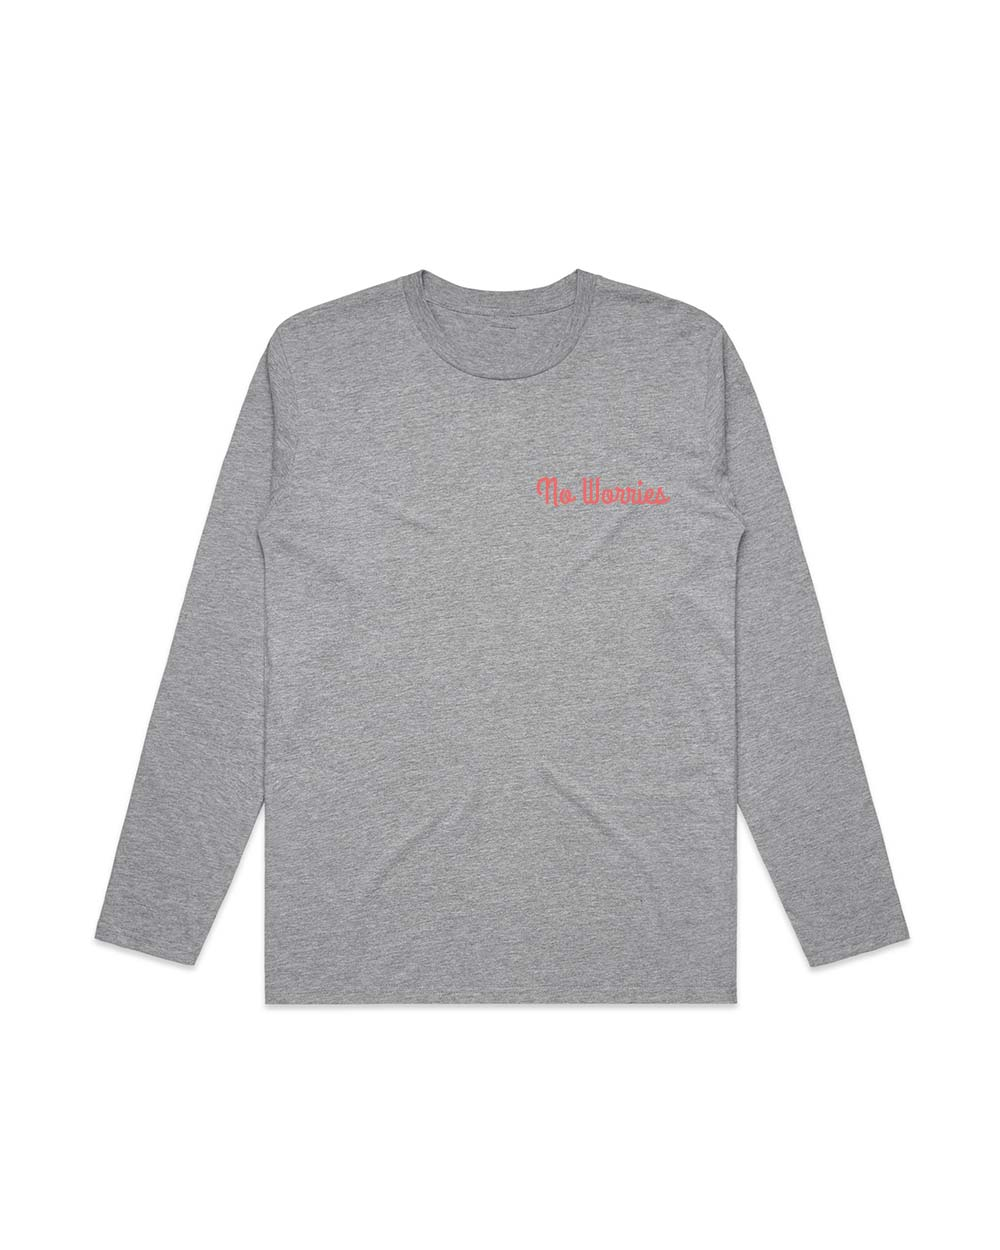 Kids East Coast Long Sleeve Tee - Threadbox